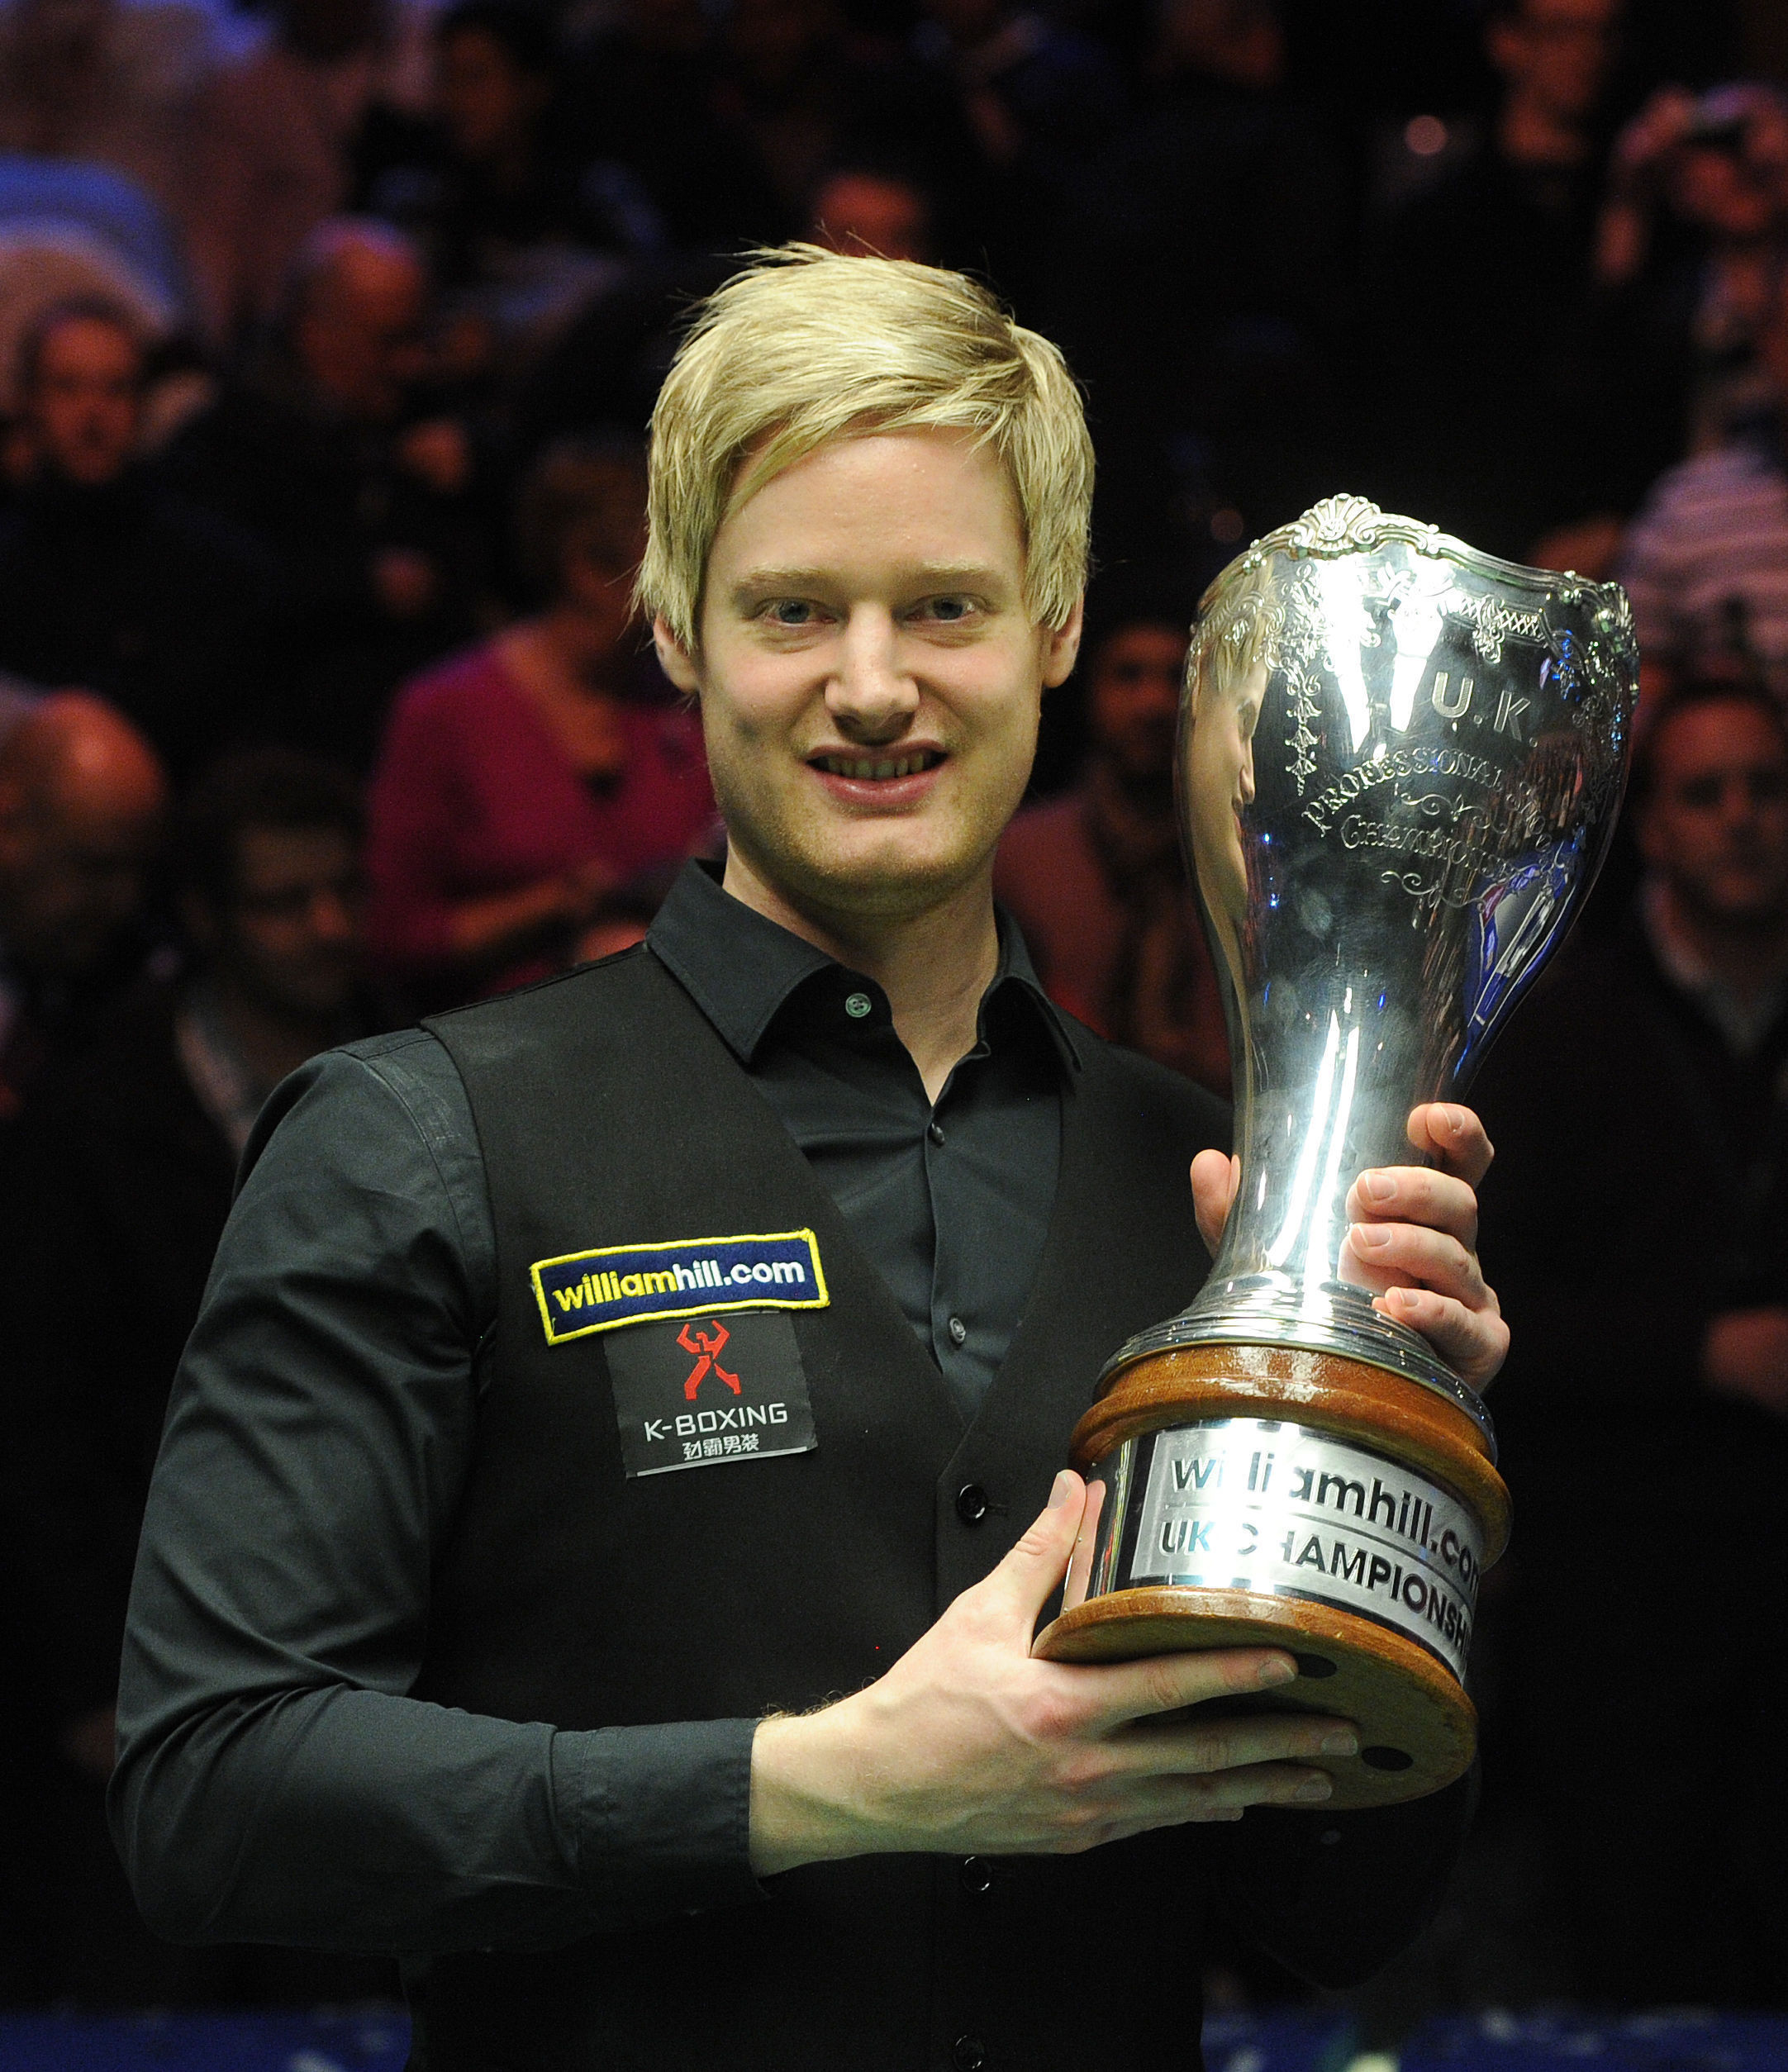 Neil Robertson, who won last year's tournament